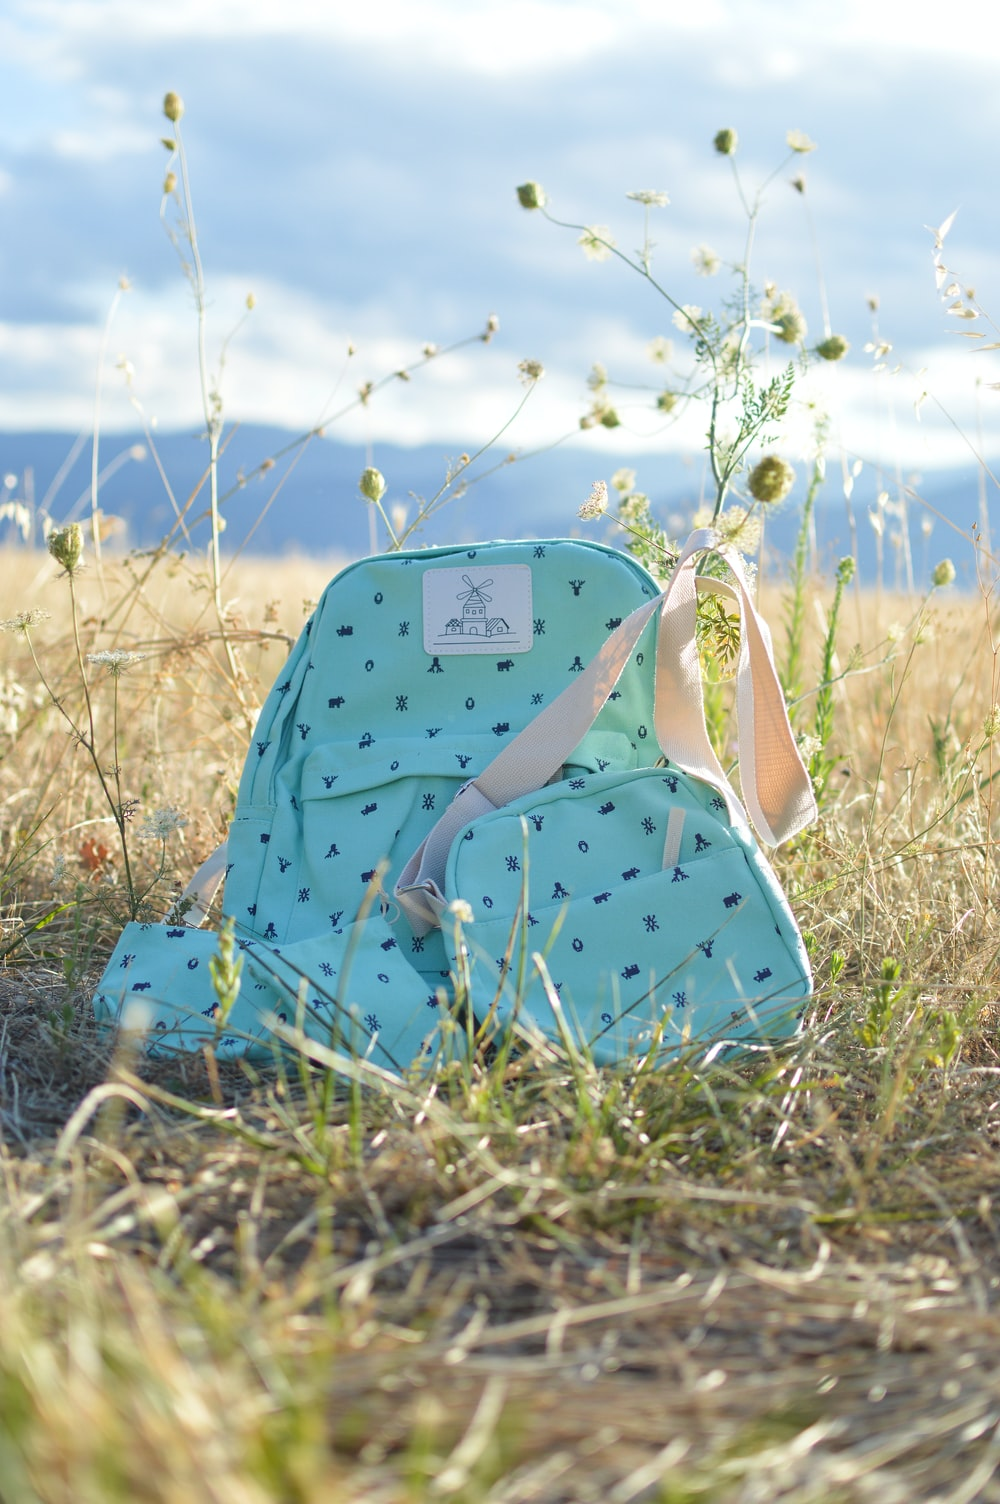 green leather backpack beside crossbody bag on grass field during daytime